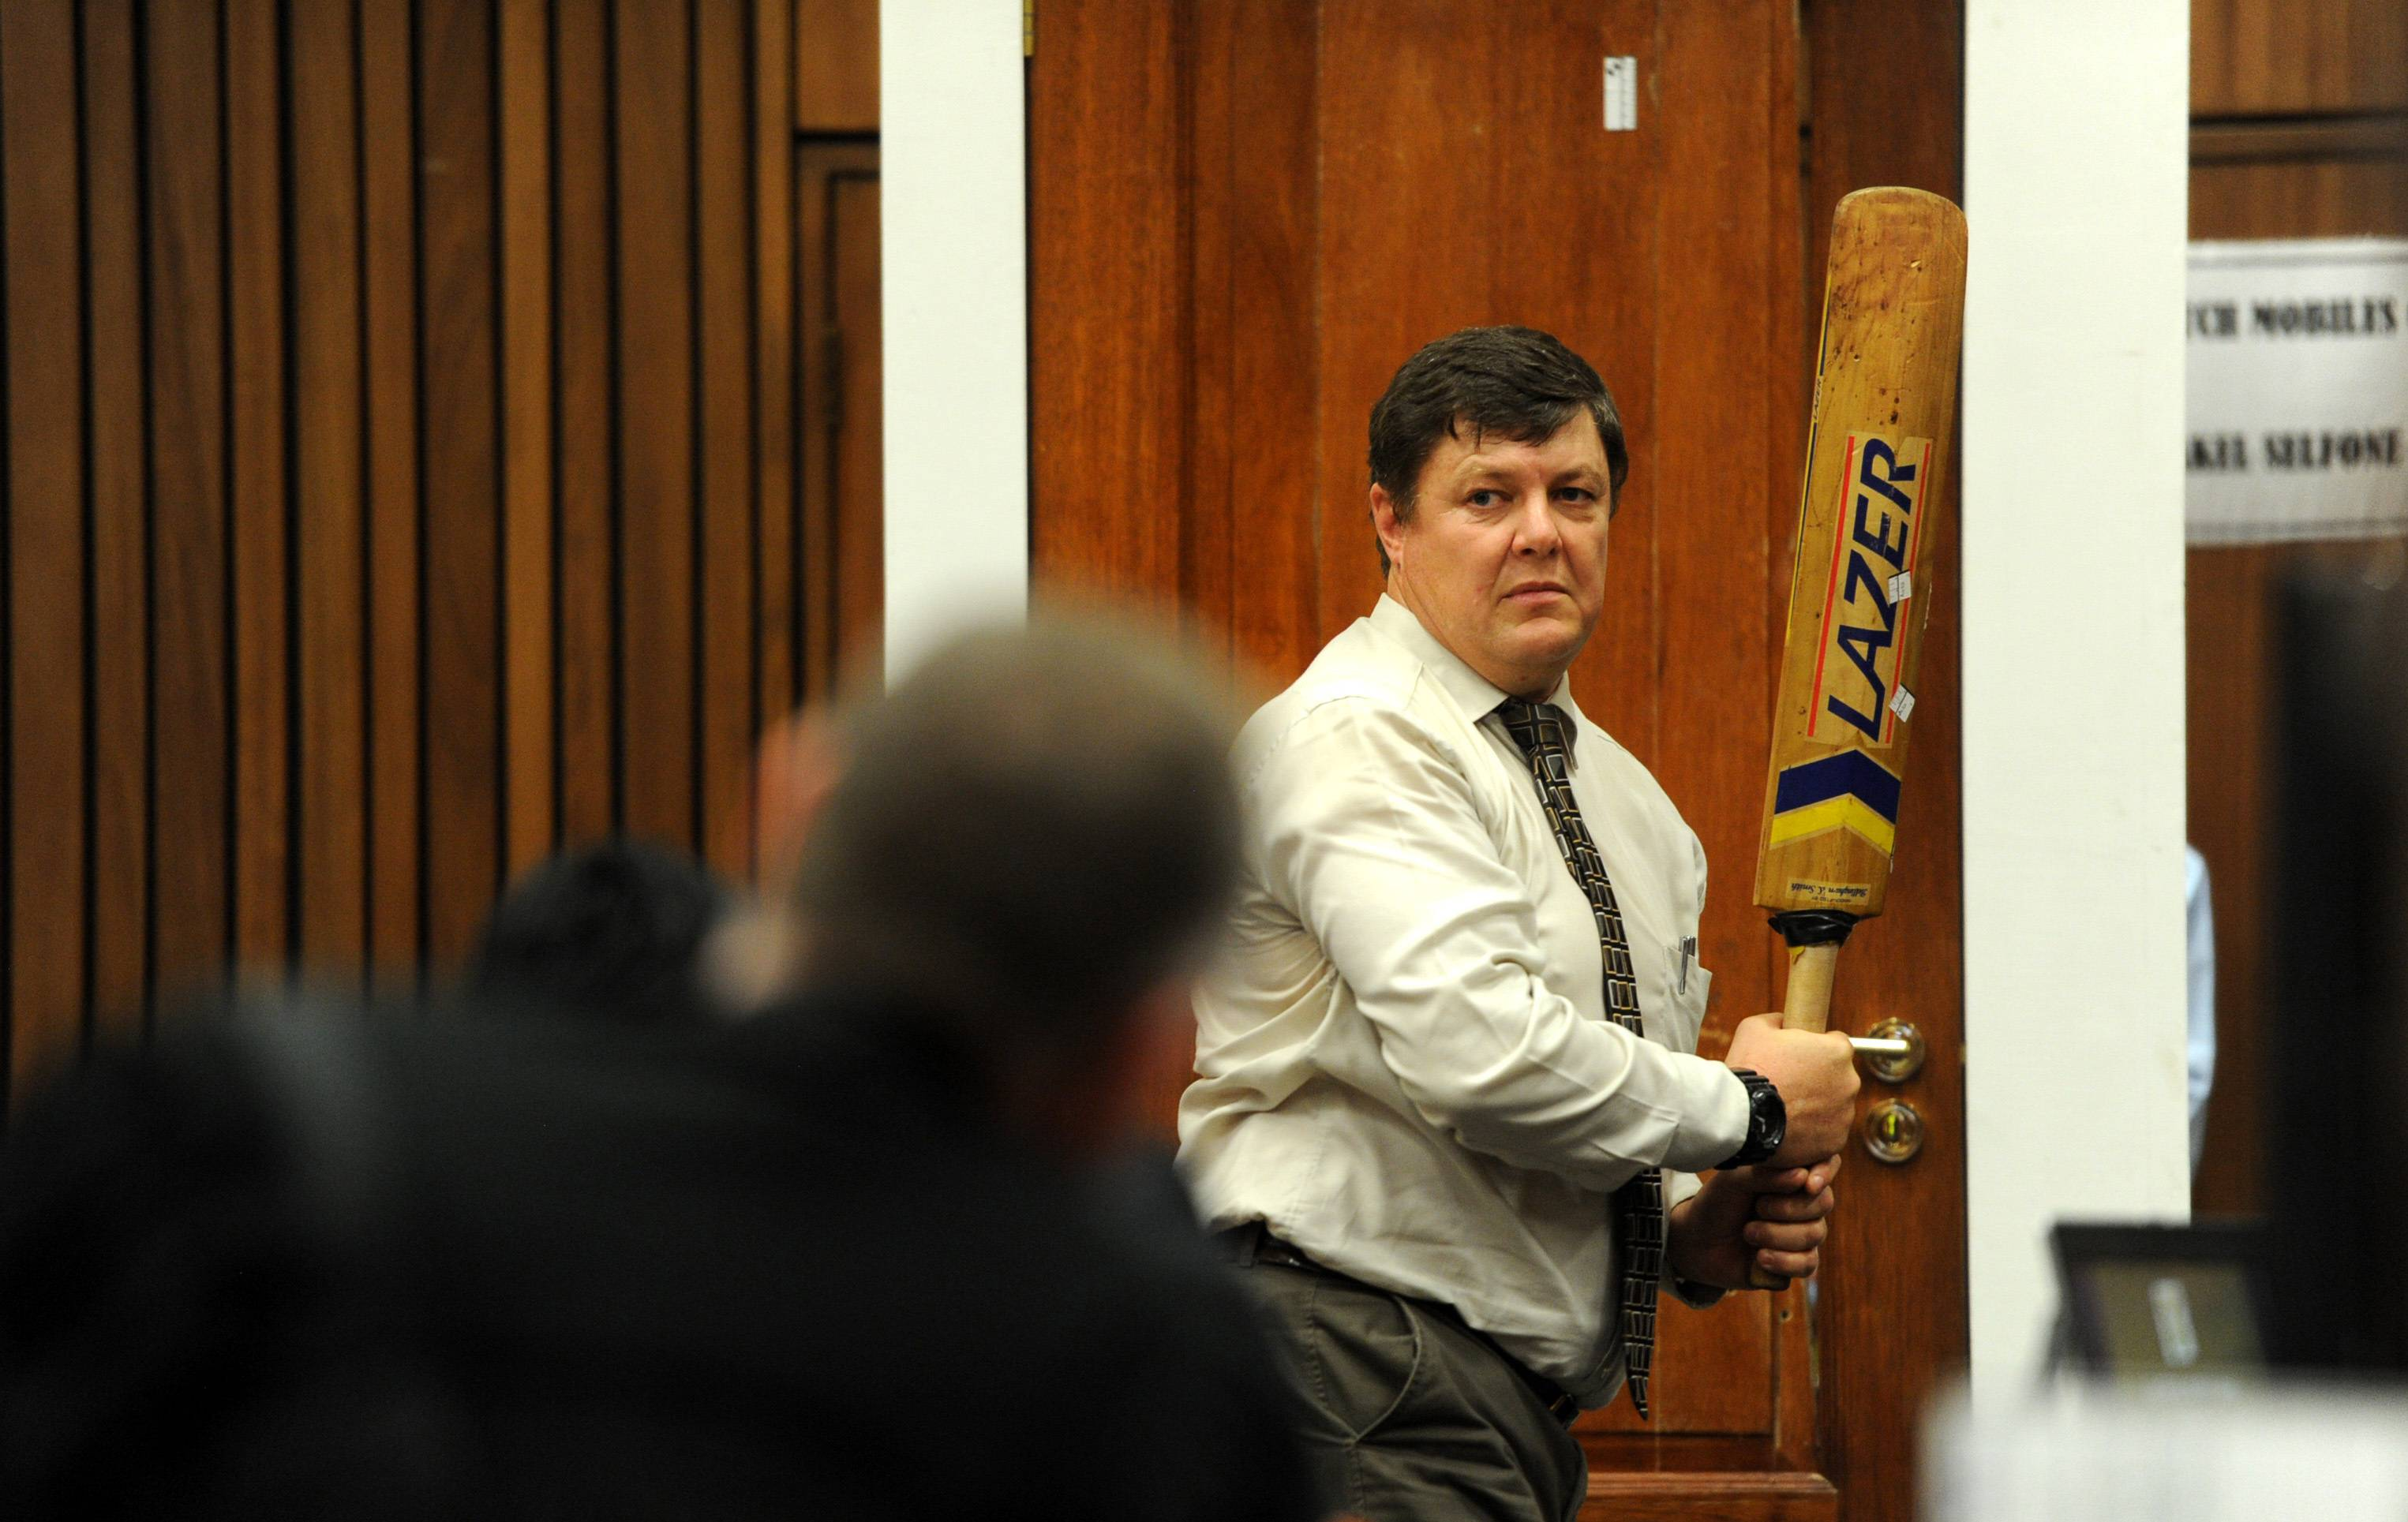 Forensic investigator Johannes Vermeulen, with a cricket bat in hand, demonstrates on a mock-up toilet cubicle, with the door, background, how the door could have been broken down with the bat, during the trial of Oscar Pistorius in court in Pretoria, South Africa, Wednesday. Pistorius is charged with the shooting death of his girlfriend Reeva Steenkamp, on Valentine's Day in 2013.